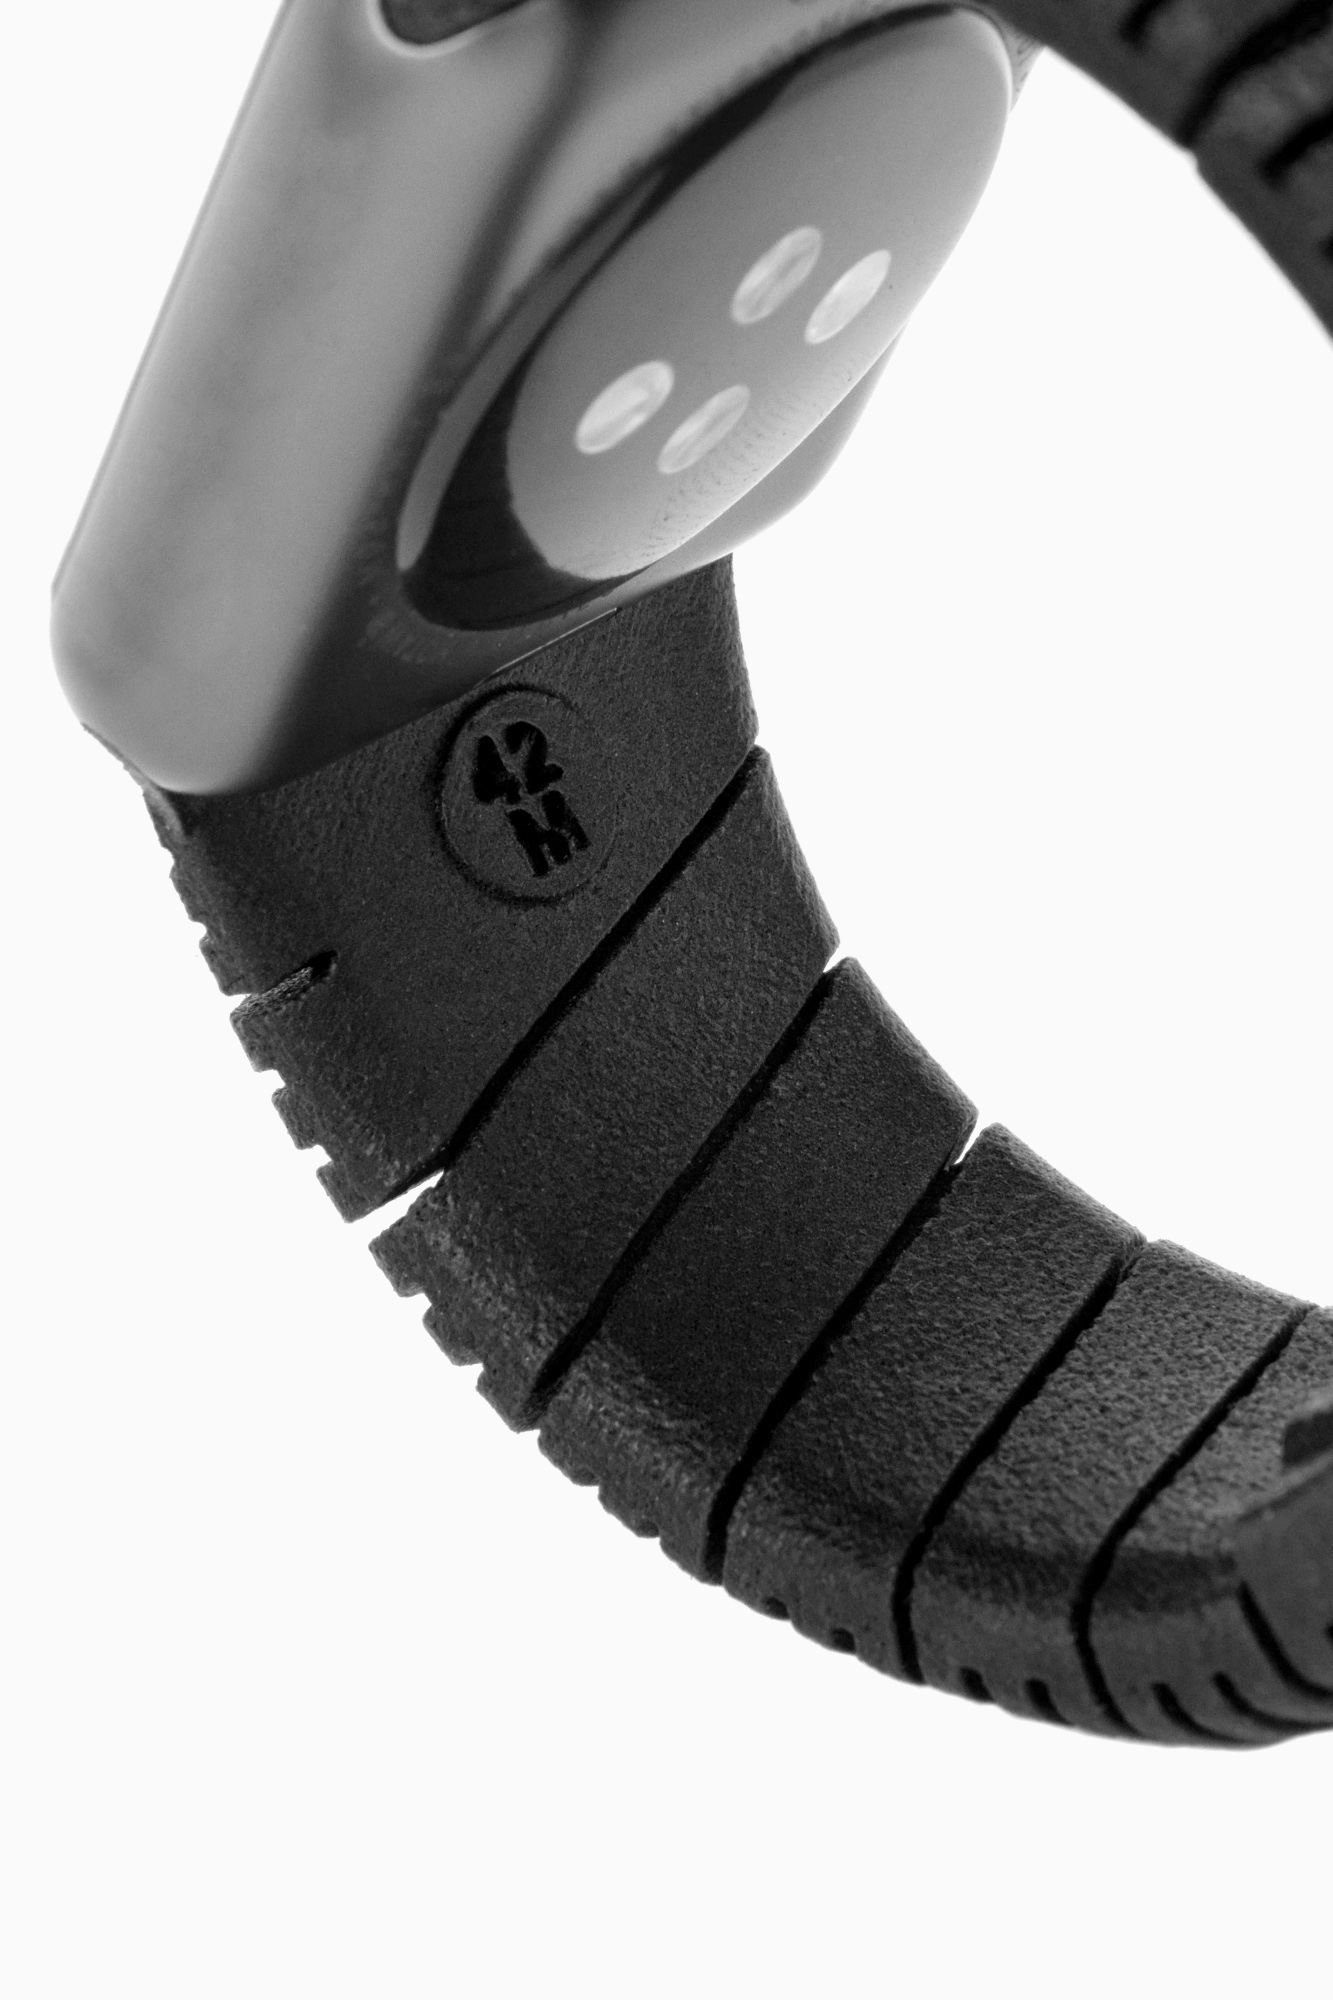 Wristband Detail | Freshfiber Apple Watch Bands, Design by Matthijs Kok for Freshfiber